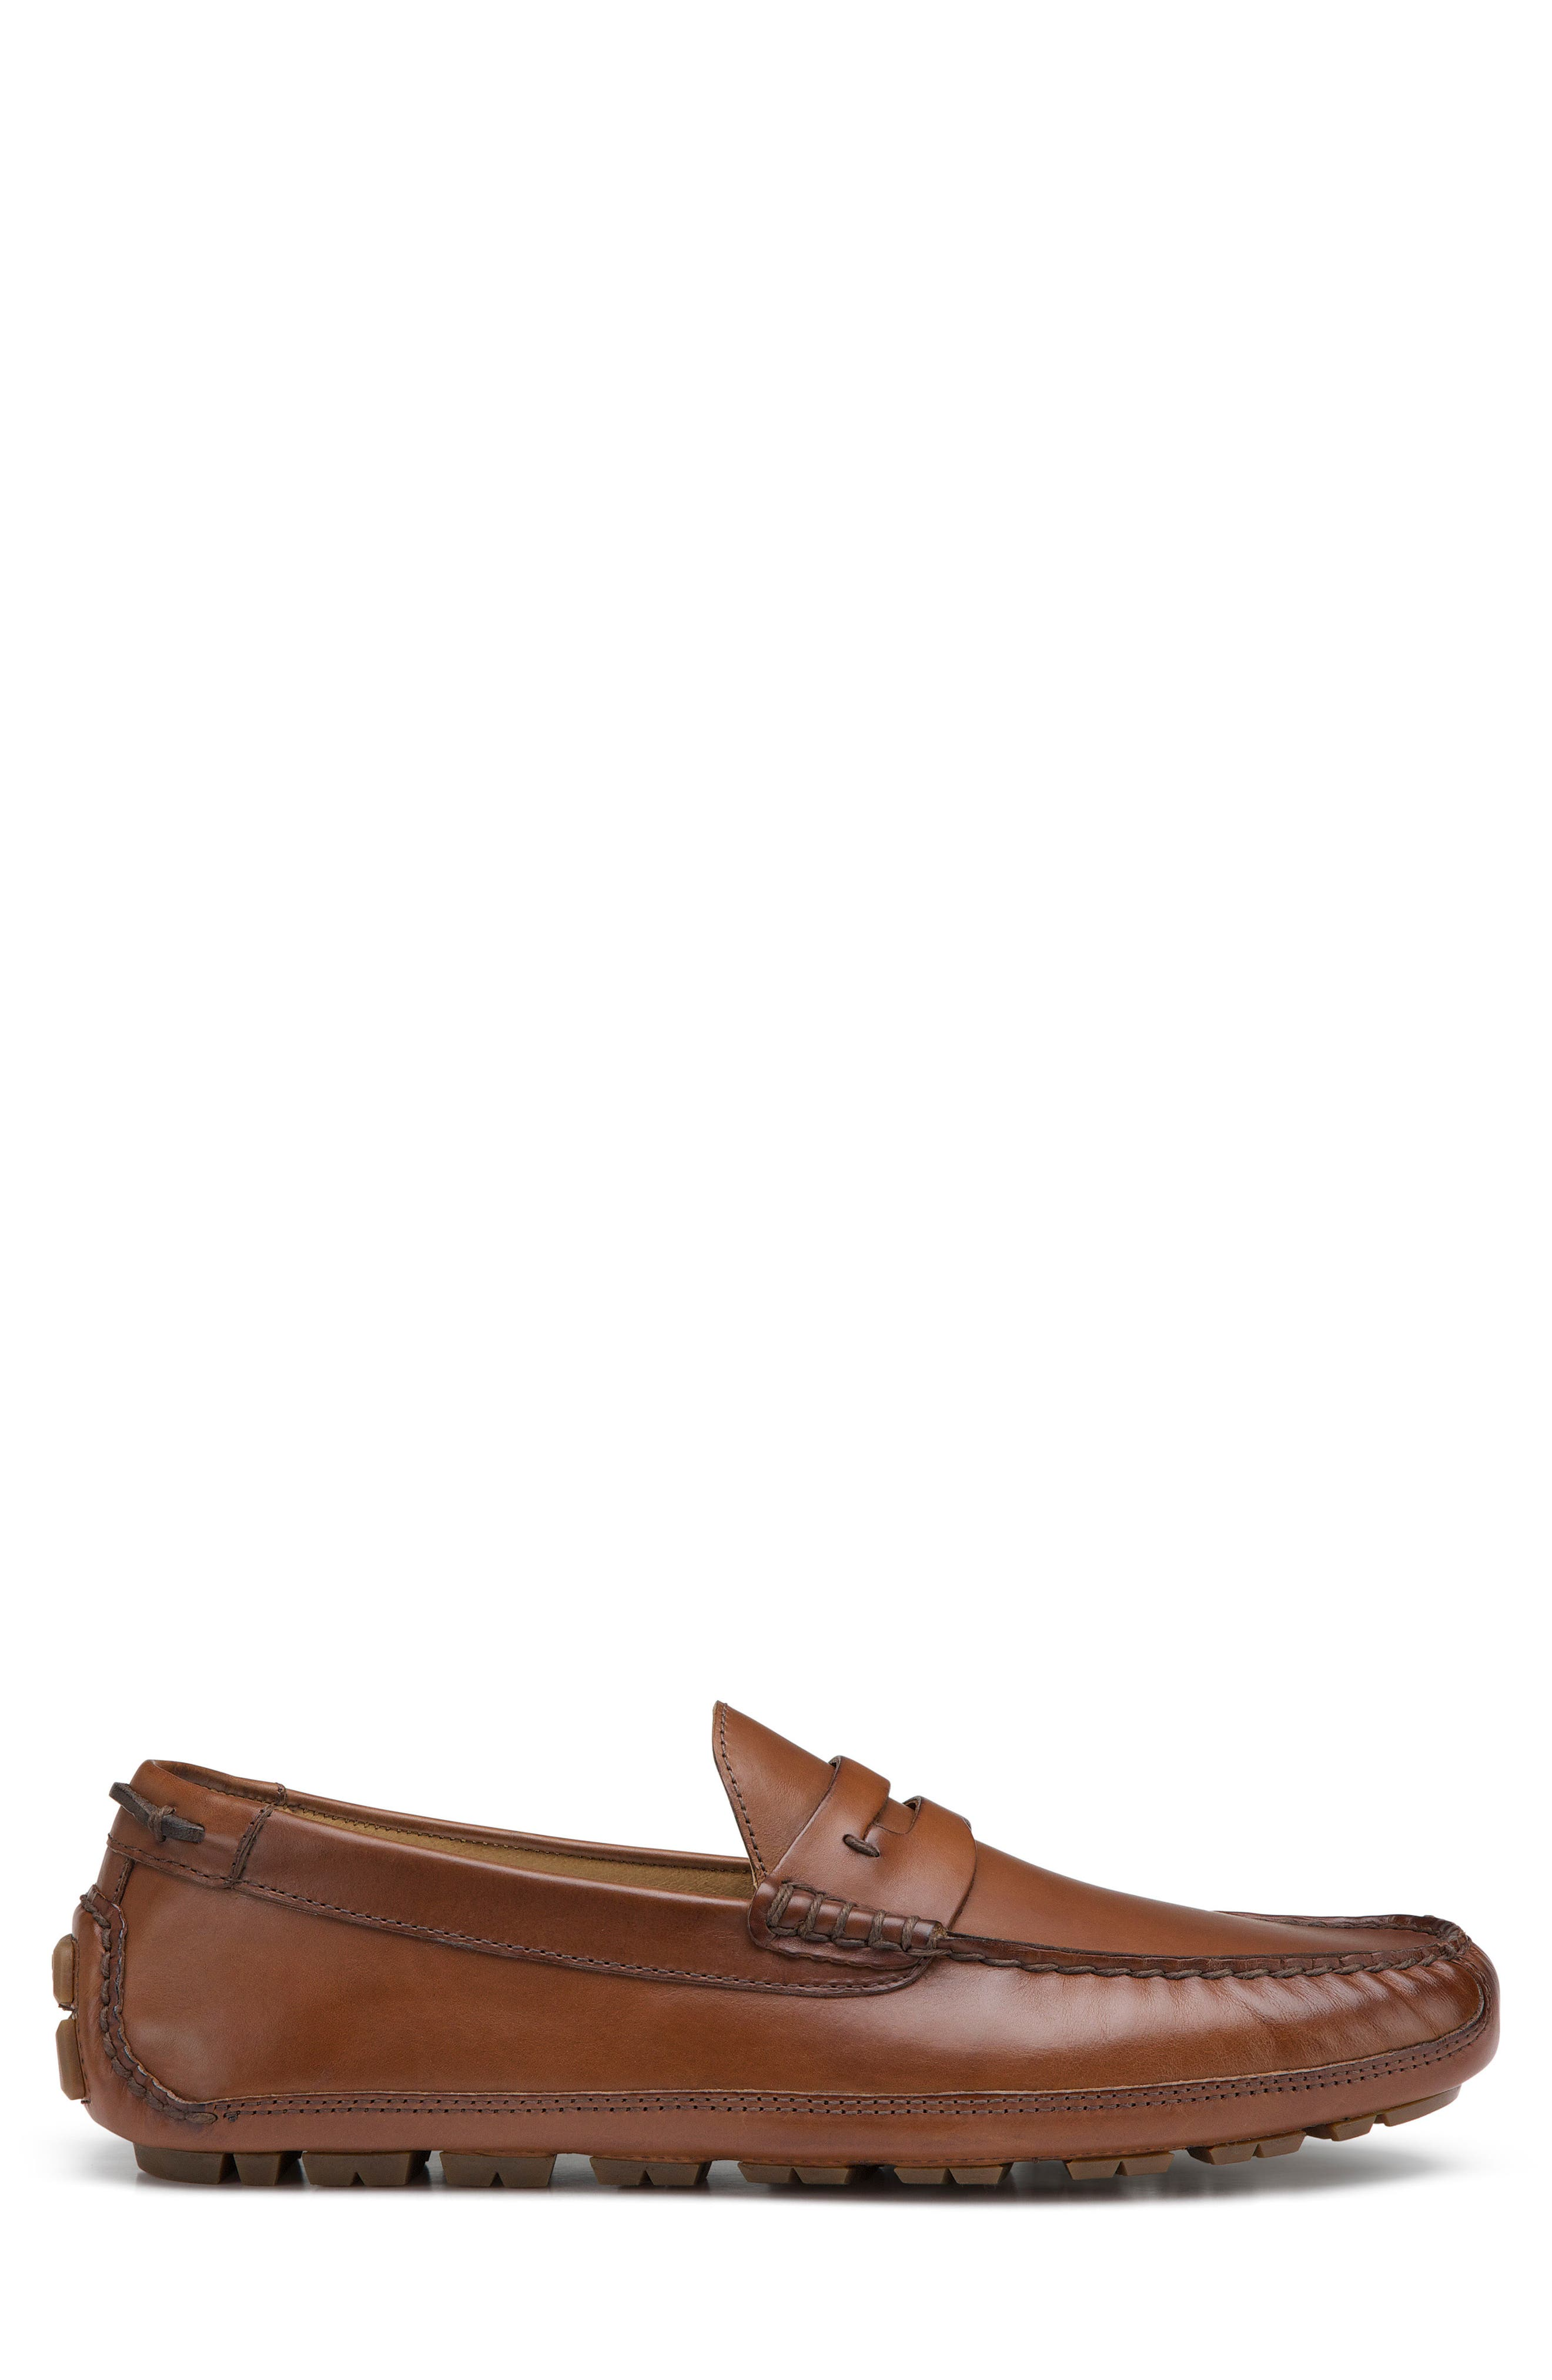 Dawson Water Resistant Driving Loafer,                             Alternate thumbnail 3, color,                             Light Brown Leather